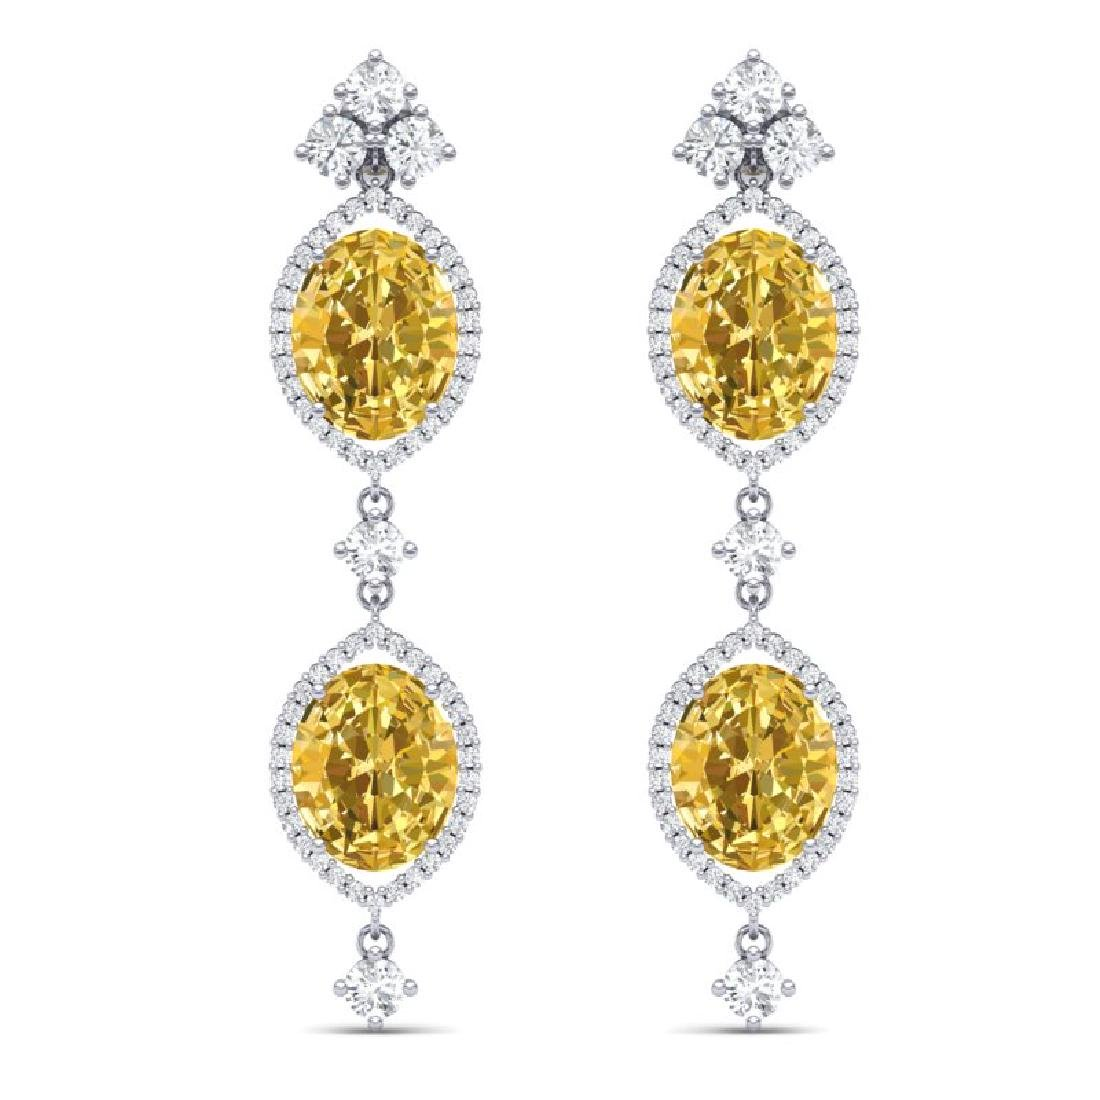 12.21 CTW Royalty Canary Citrine & VS Diamond Earrings